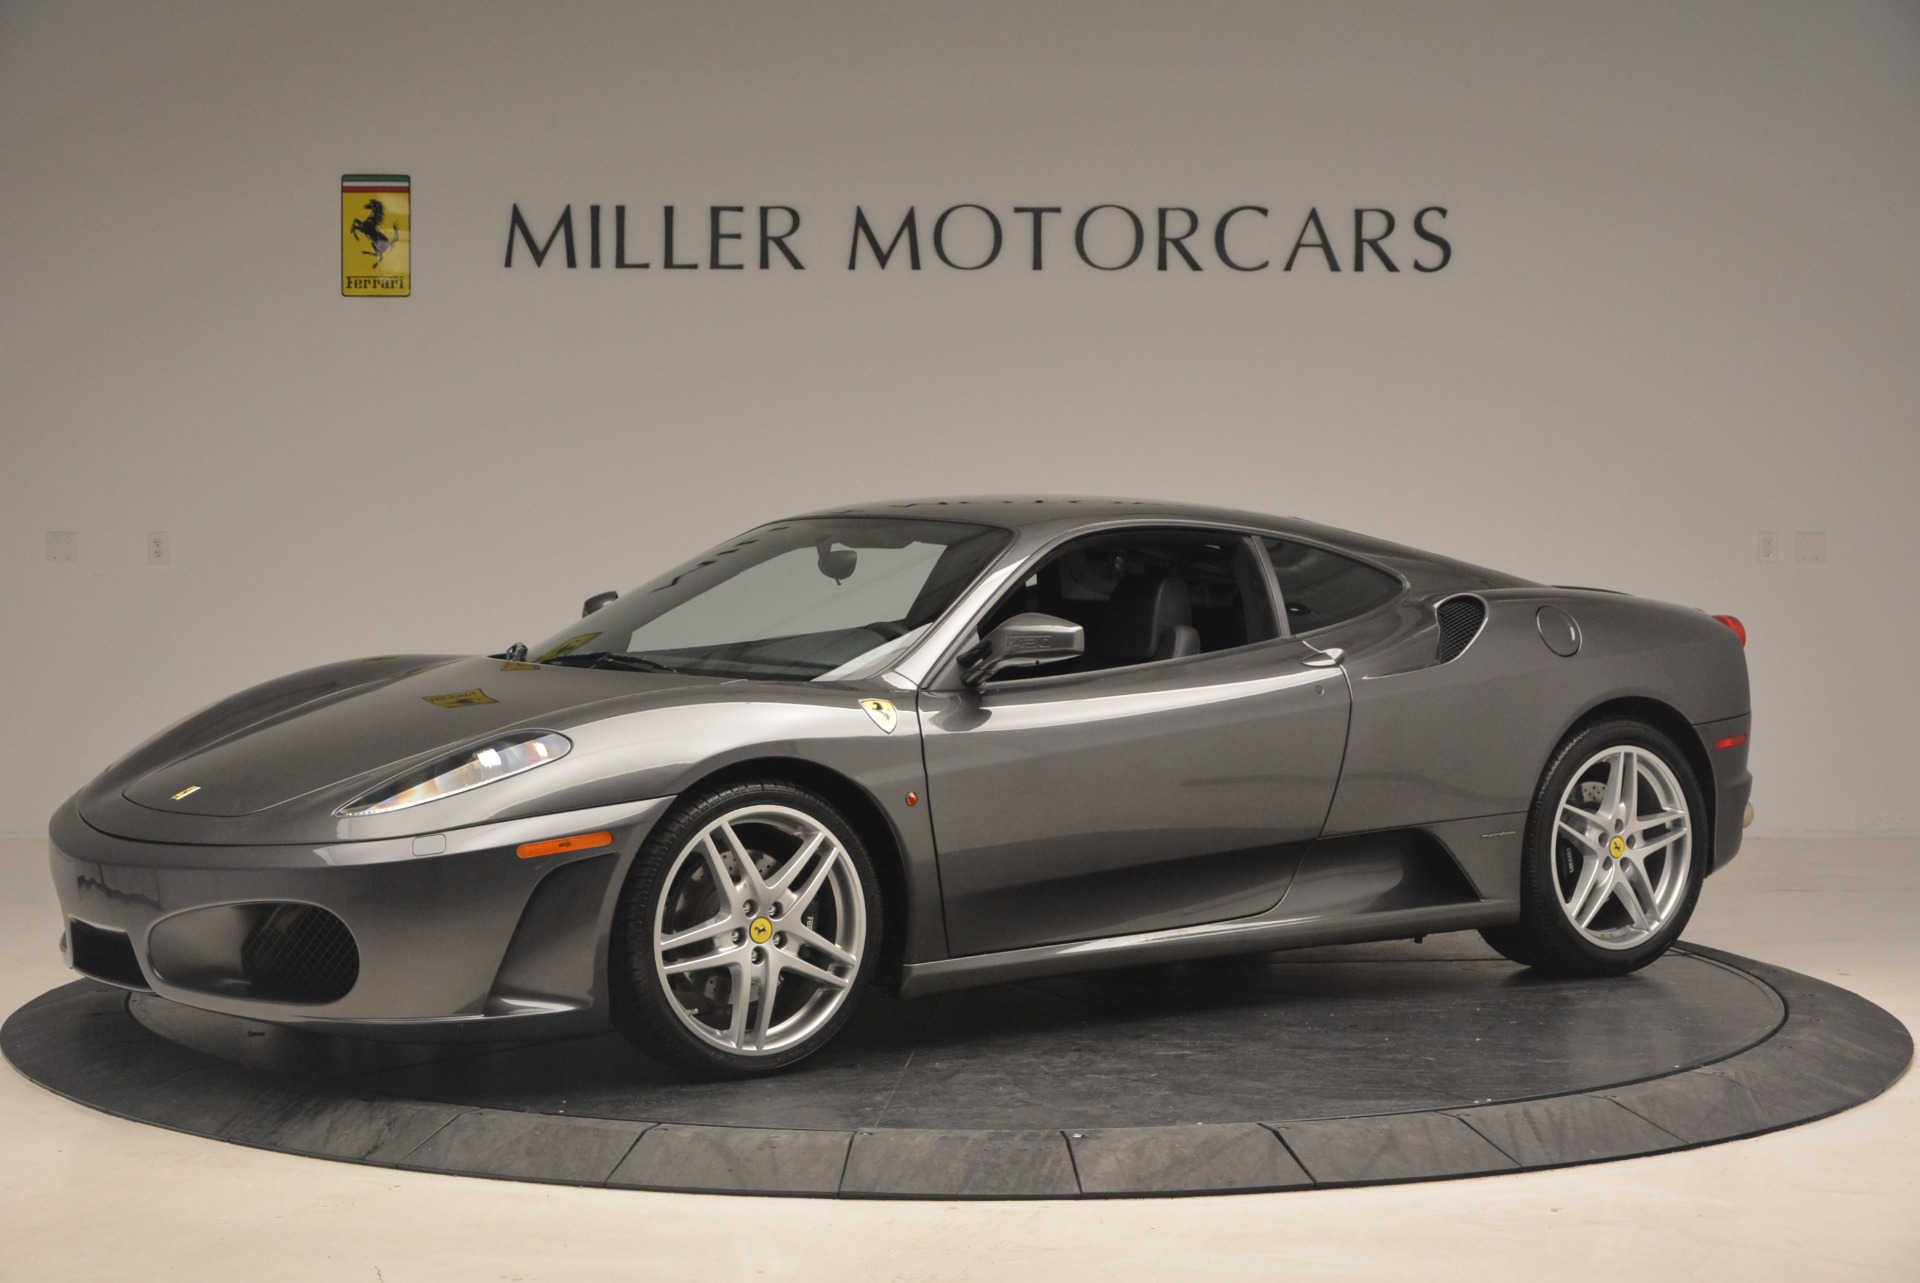 Used 2005 Ferrari F430 6-Speed Manual For Sale In Greenwich, CT. Alfa Romeo of Greenwich, 4391 1286_p2